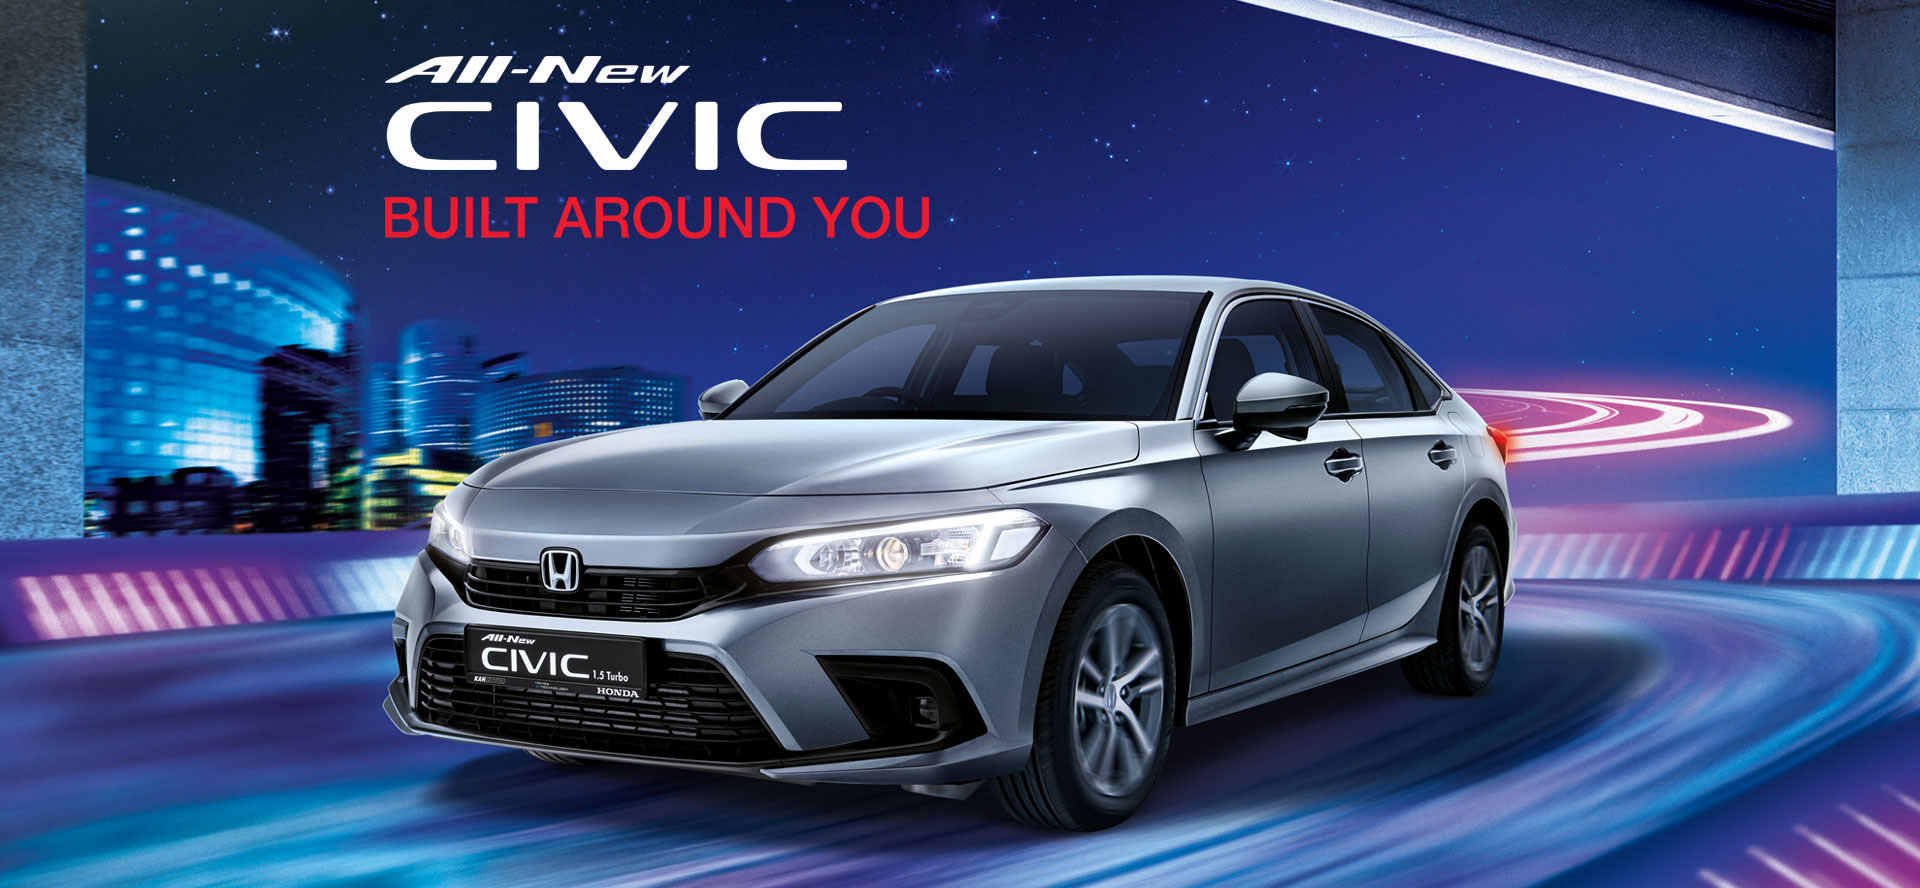 All-New-Civic_Model-Page-Banner-v1---1920x888px Honda All-New Civic